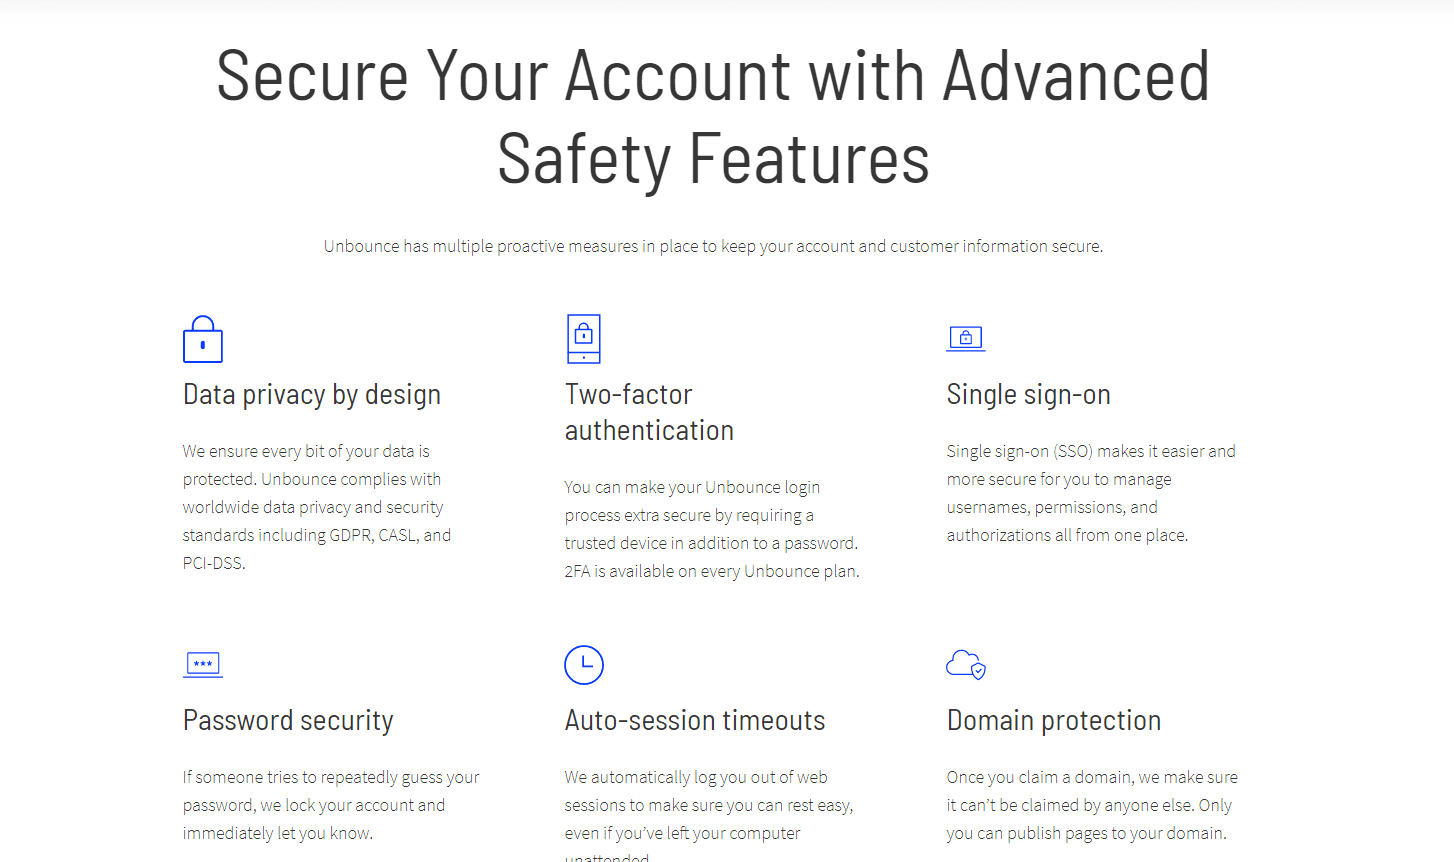 Unbounce is secure to use